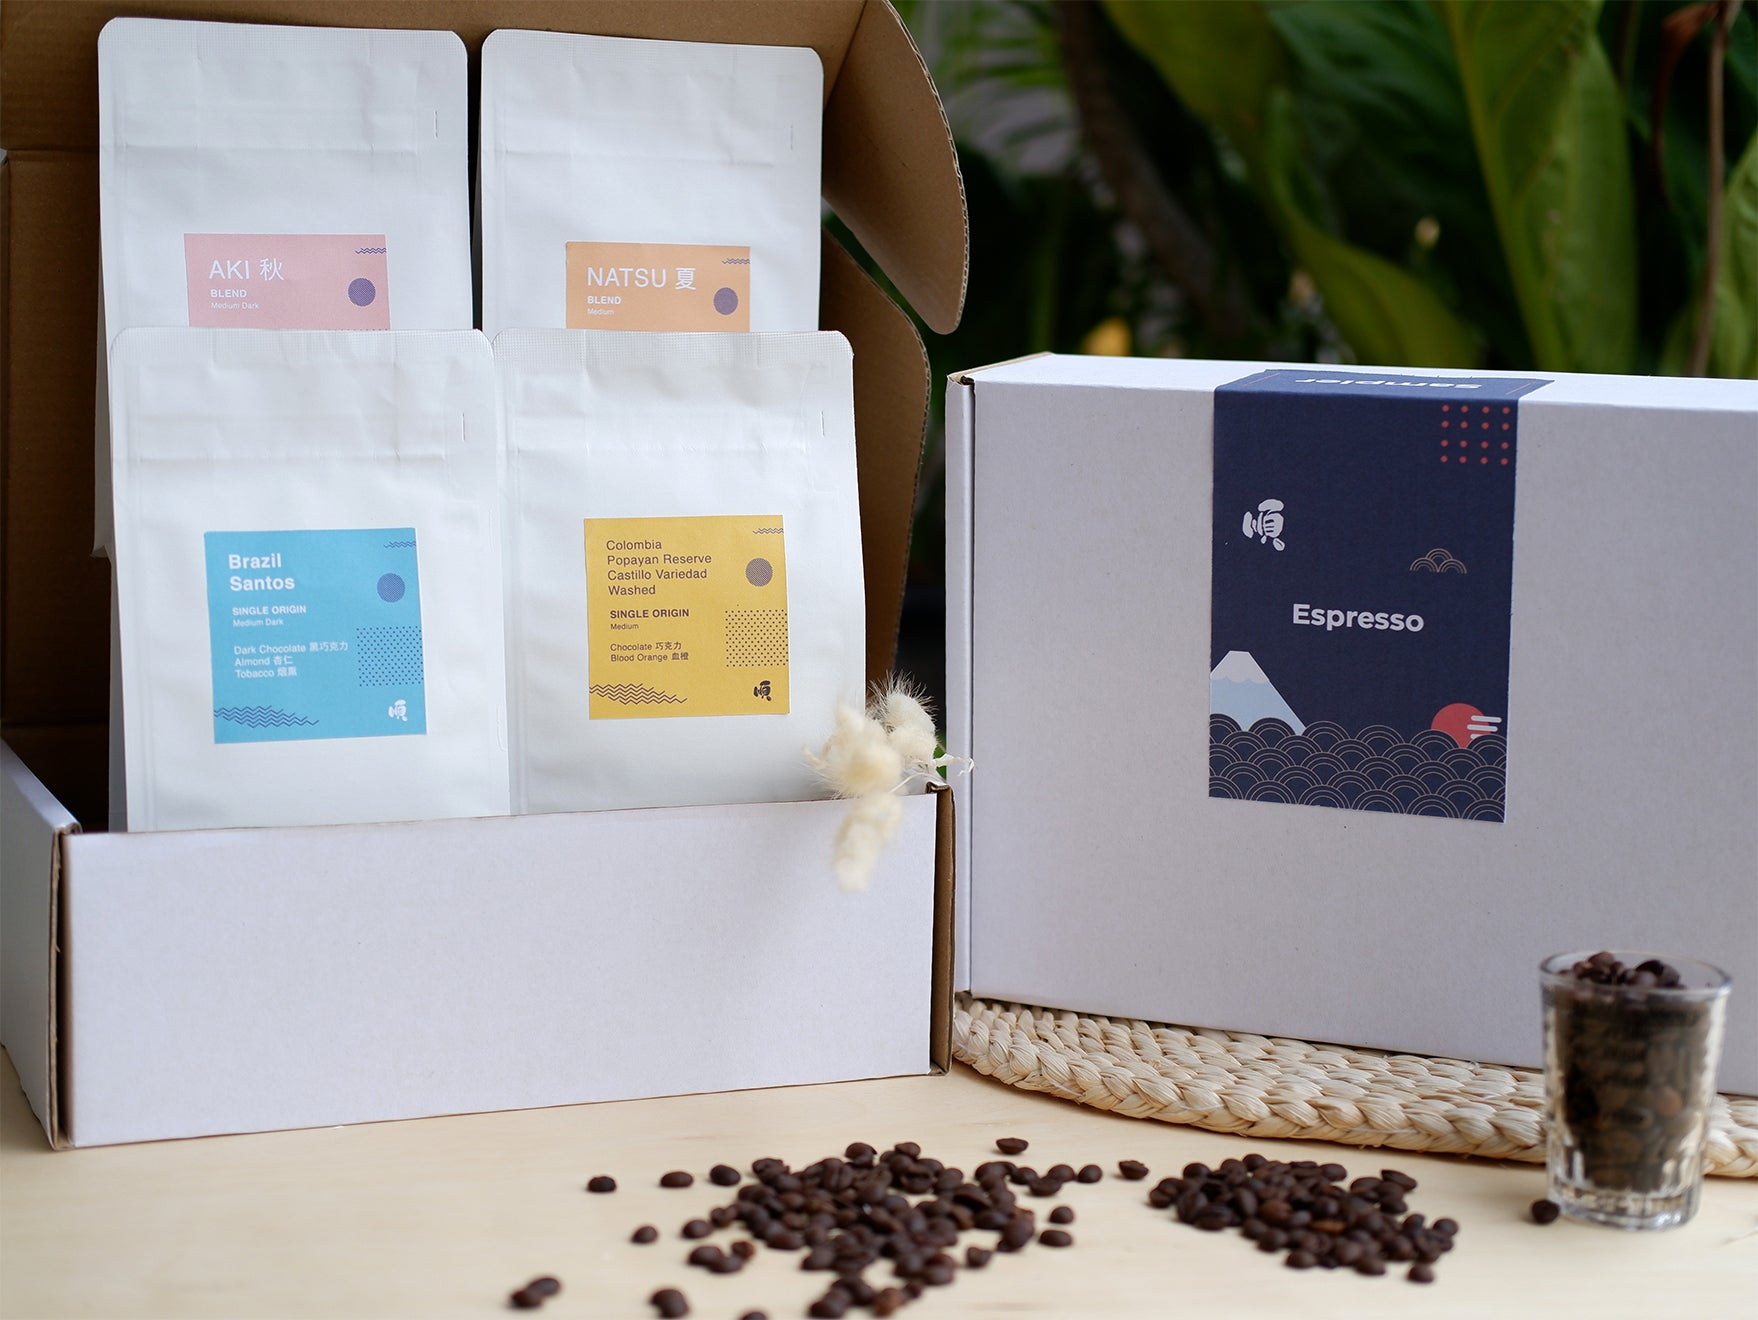 Sampler Pack - Espresso - Soon Specialty Coffee - Malaysia First Direct Fire Coffee Roaster